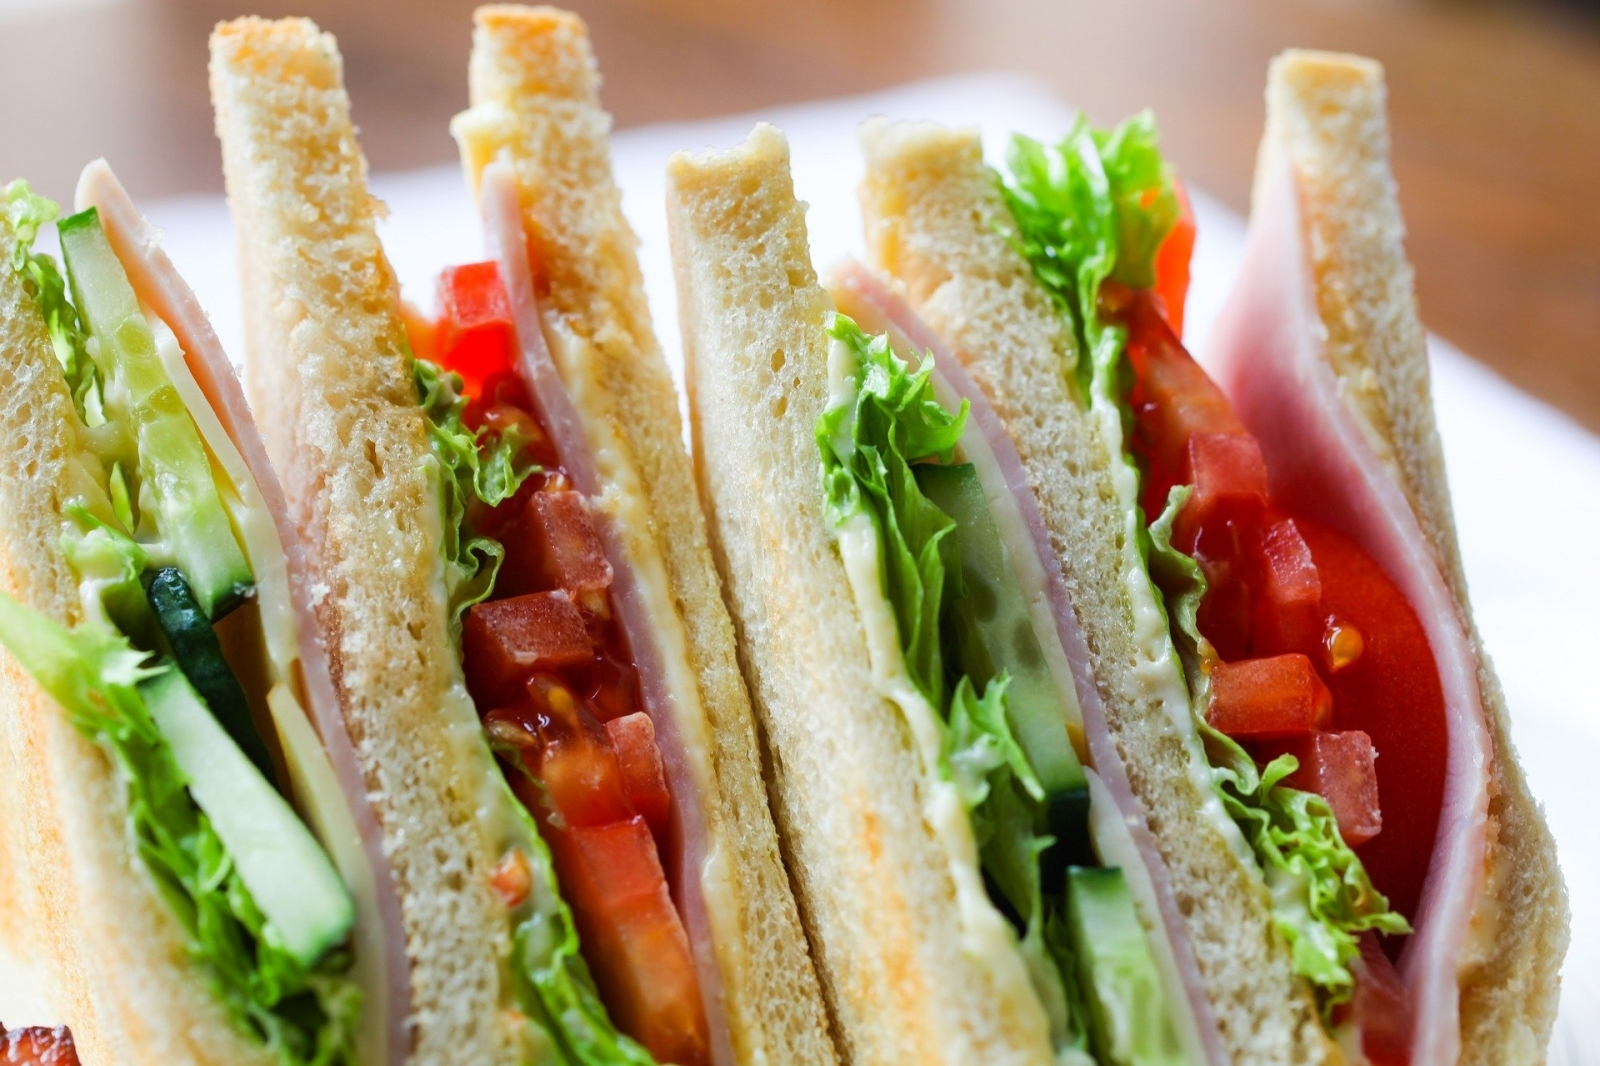 Is your lunchtime sandwich bad for the environment?